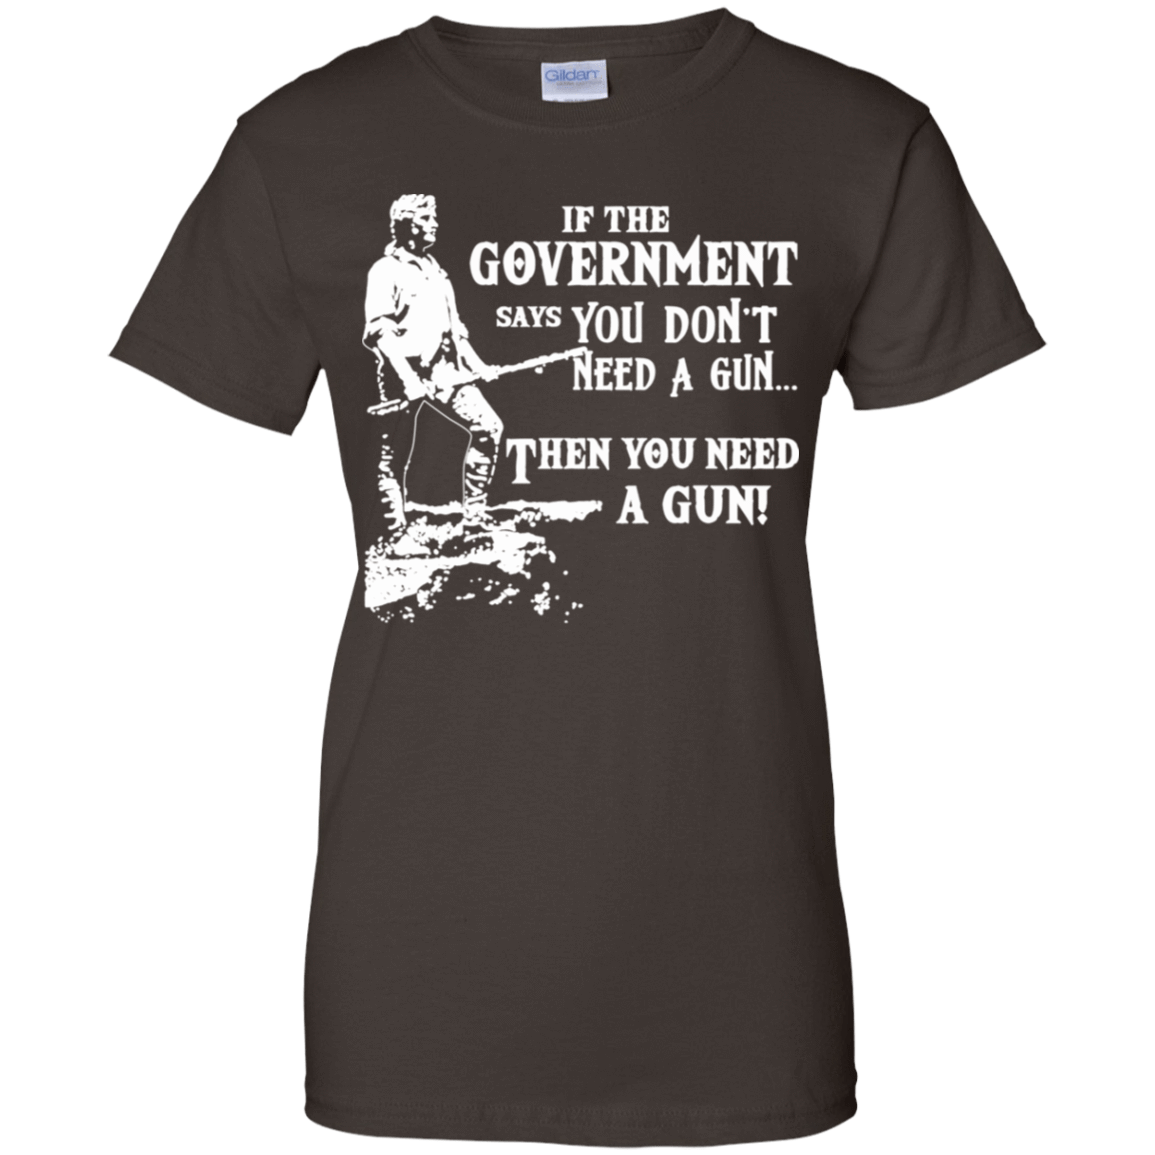 If The Government Says You Don't Need A Gun ... Then You Need A Gun 939-9251-74209232-44702 - Tee Ript